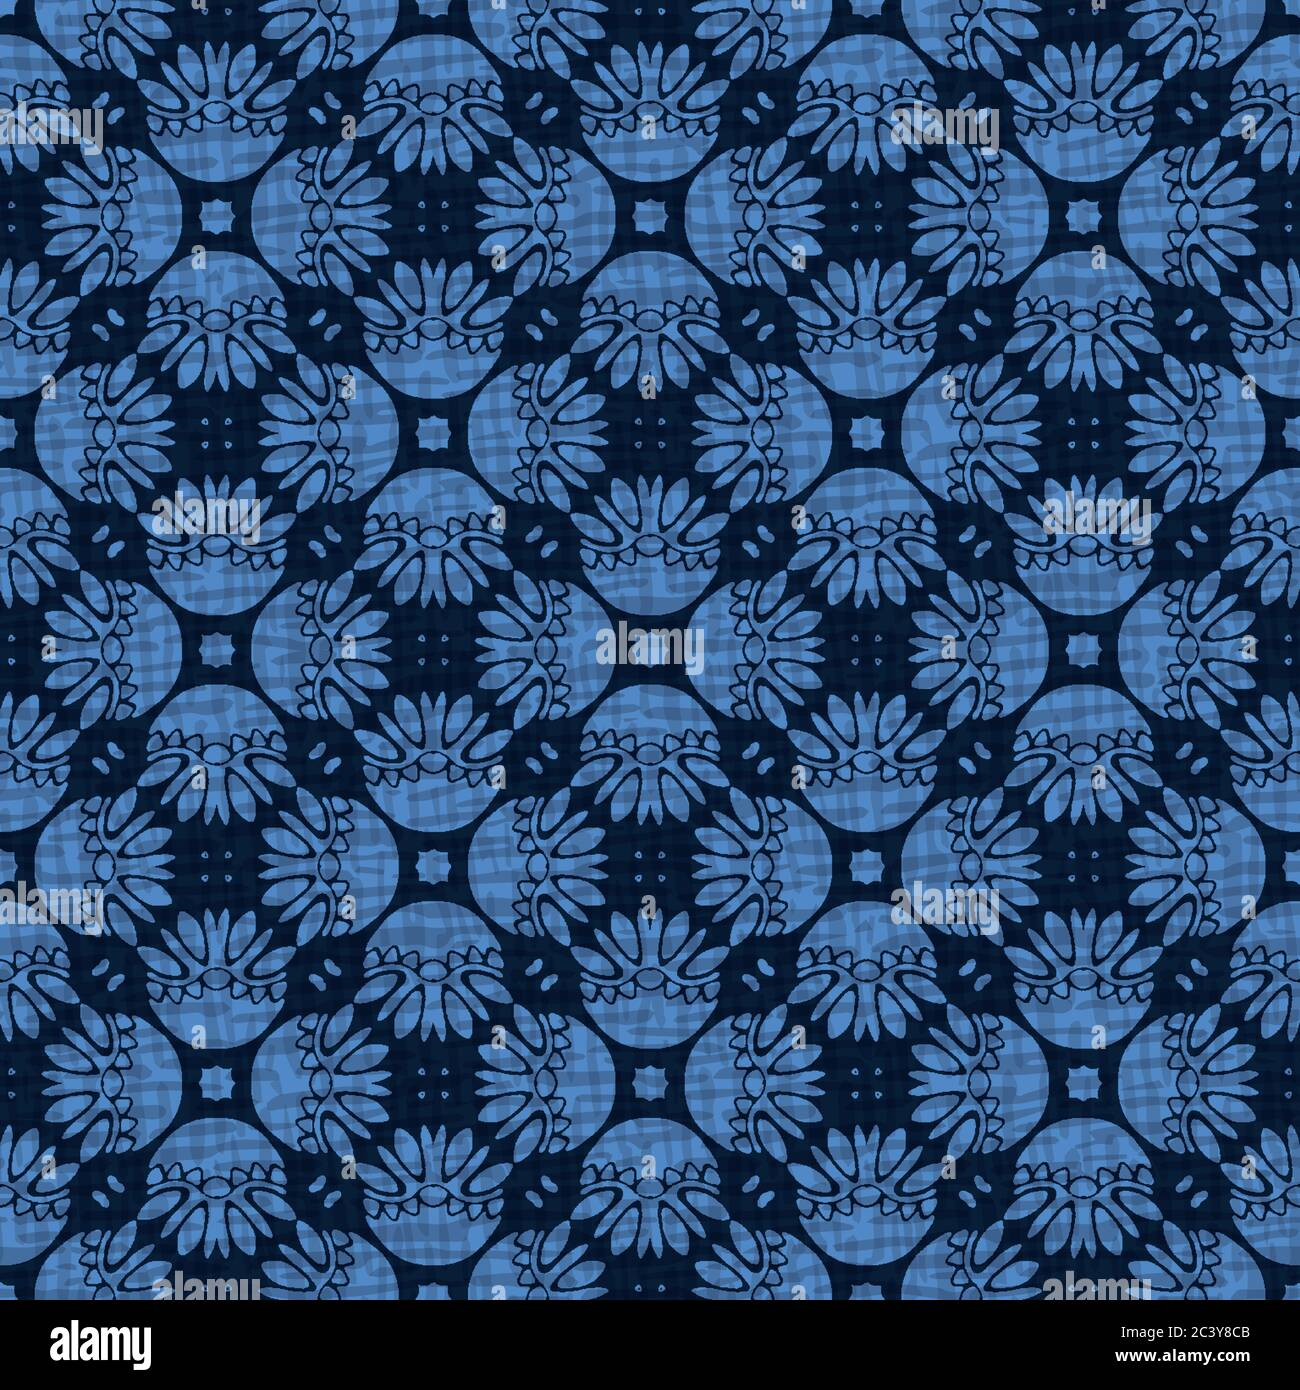 Seamless Pattern Indigo Blue Stylized Mosaic Floral Leaf Japanese Navy Quilt Style Home Decor Background Trendy Mosaic Grid All Over Print Stock Vector Image Art Alamy